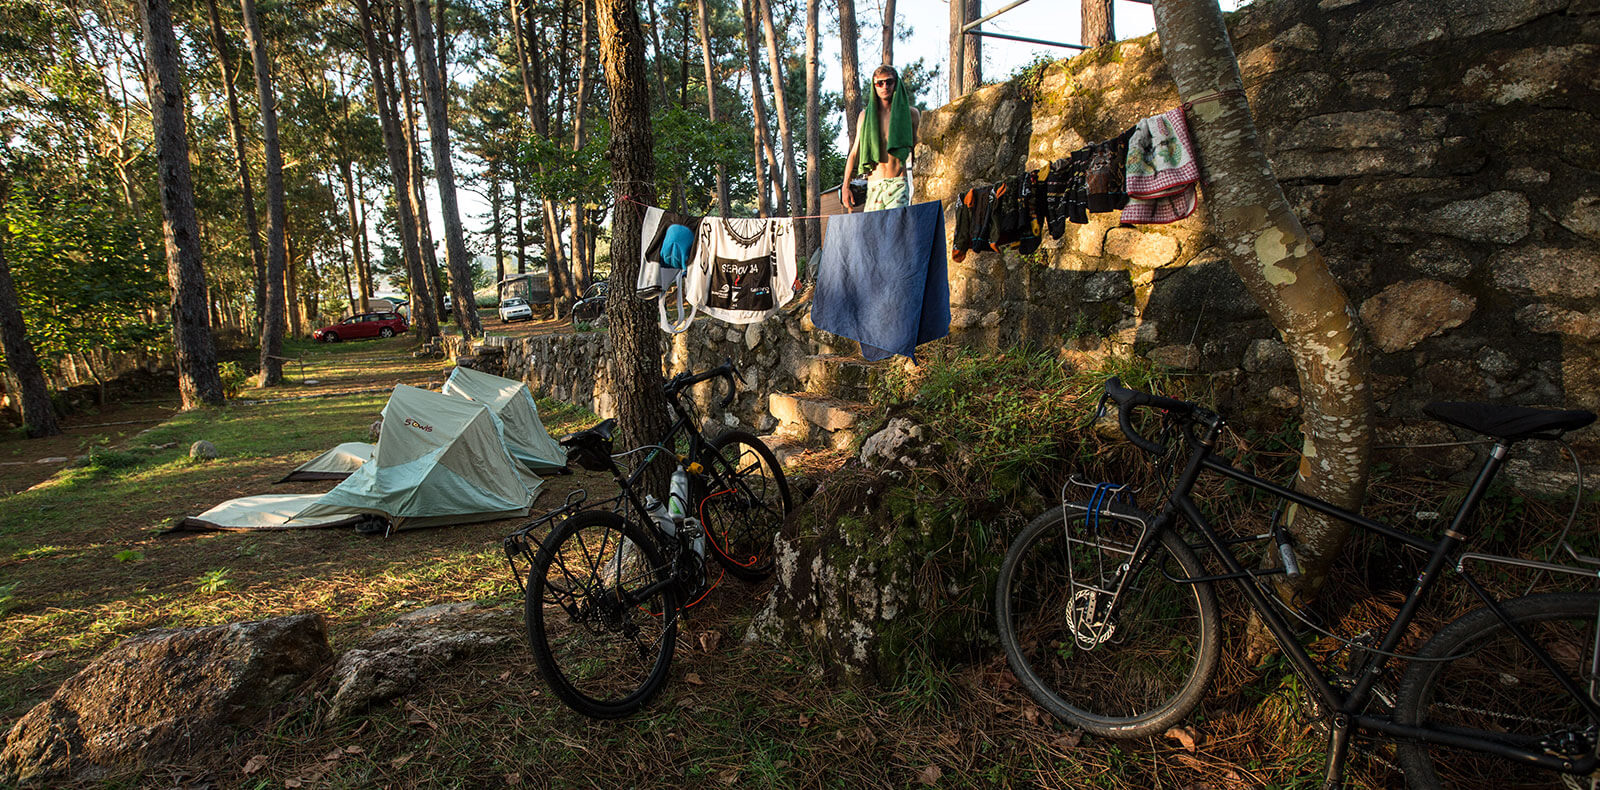 Solo Shelter in use by Salty Spokes team for Europe trek